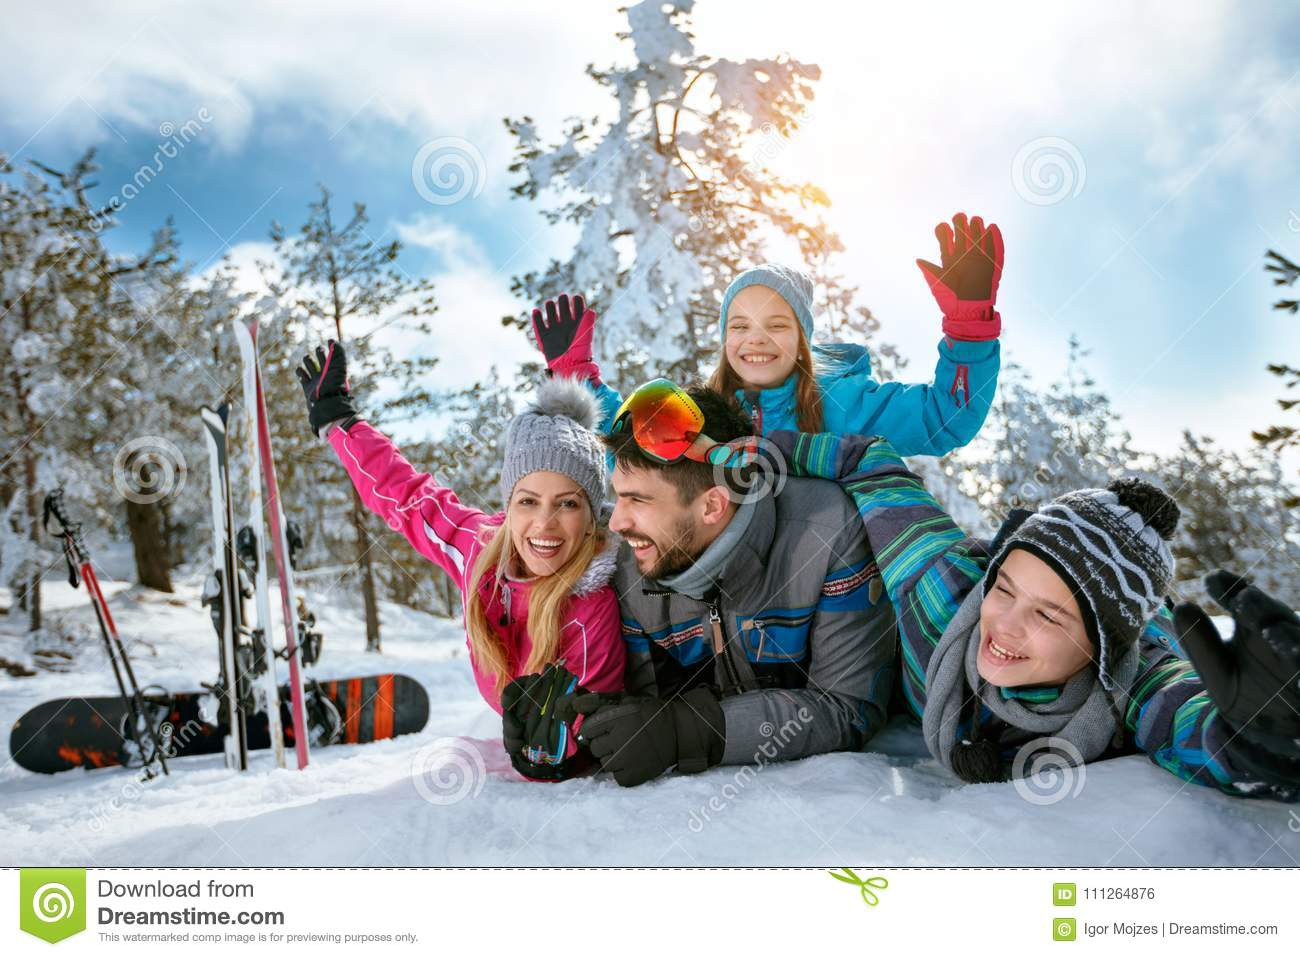 Family enjoying winter vacations in mountains on snow